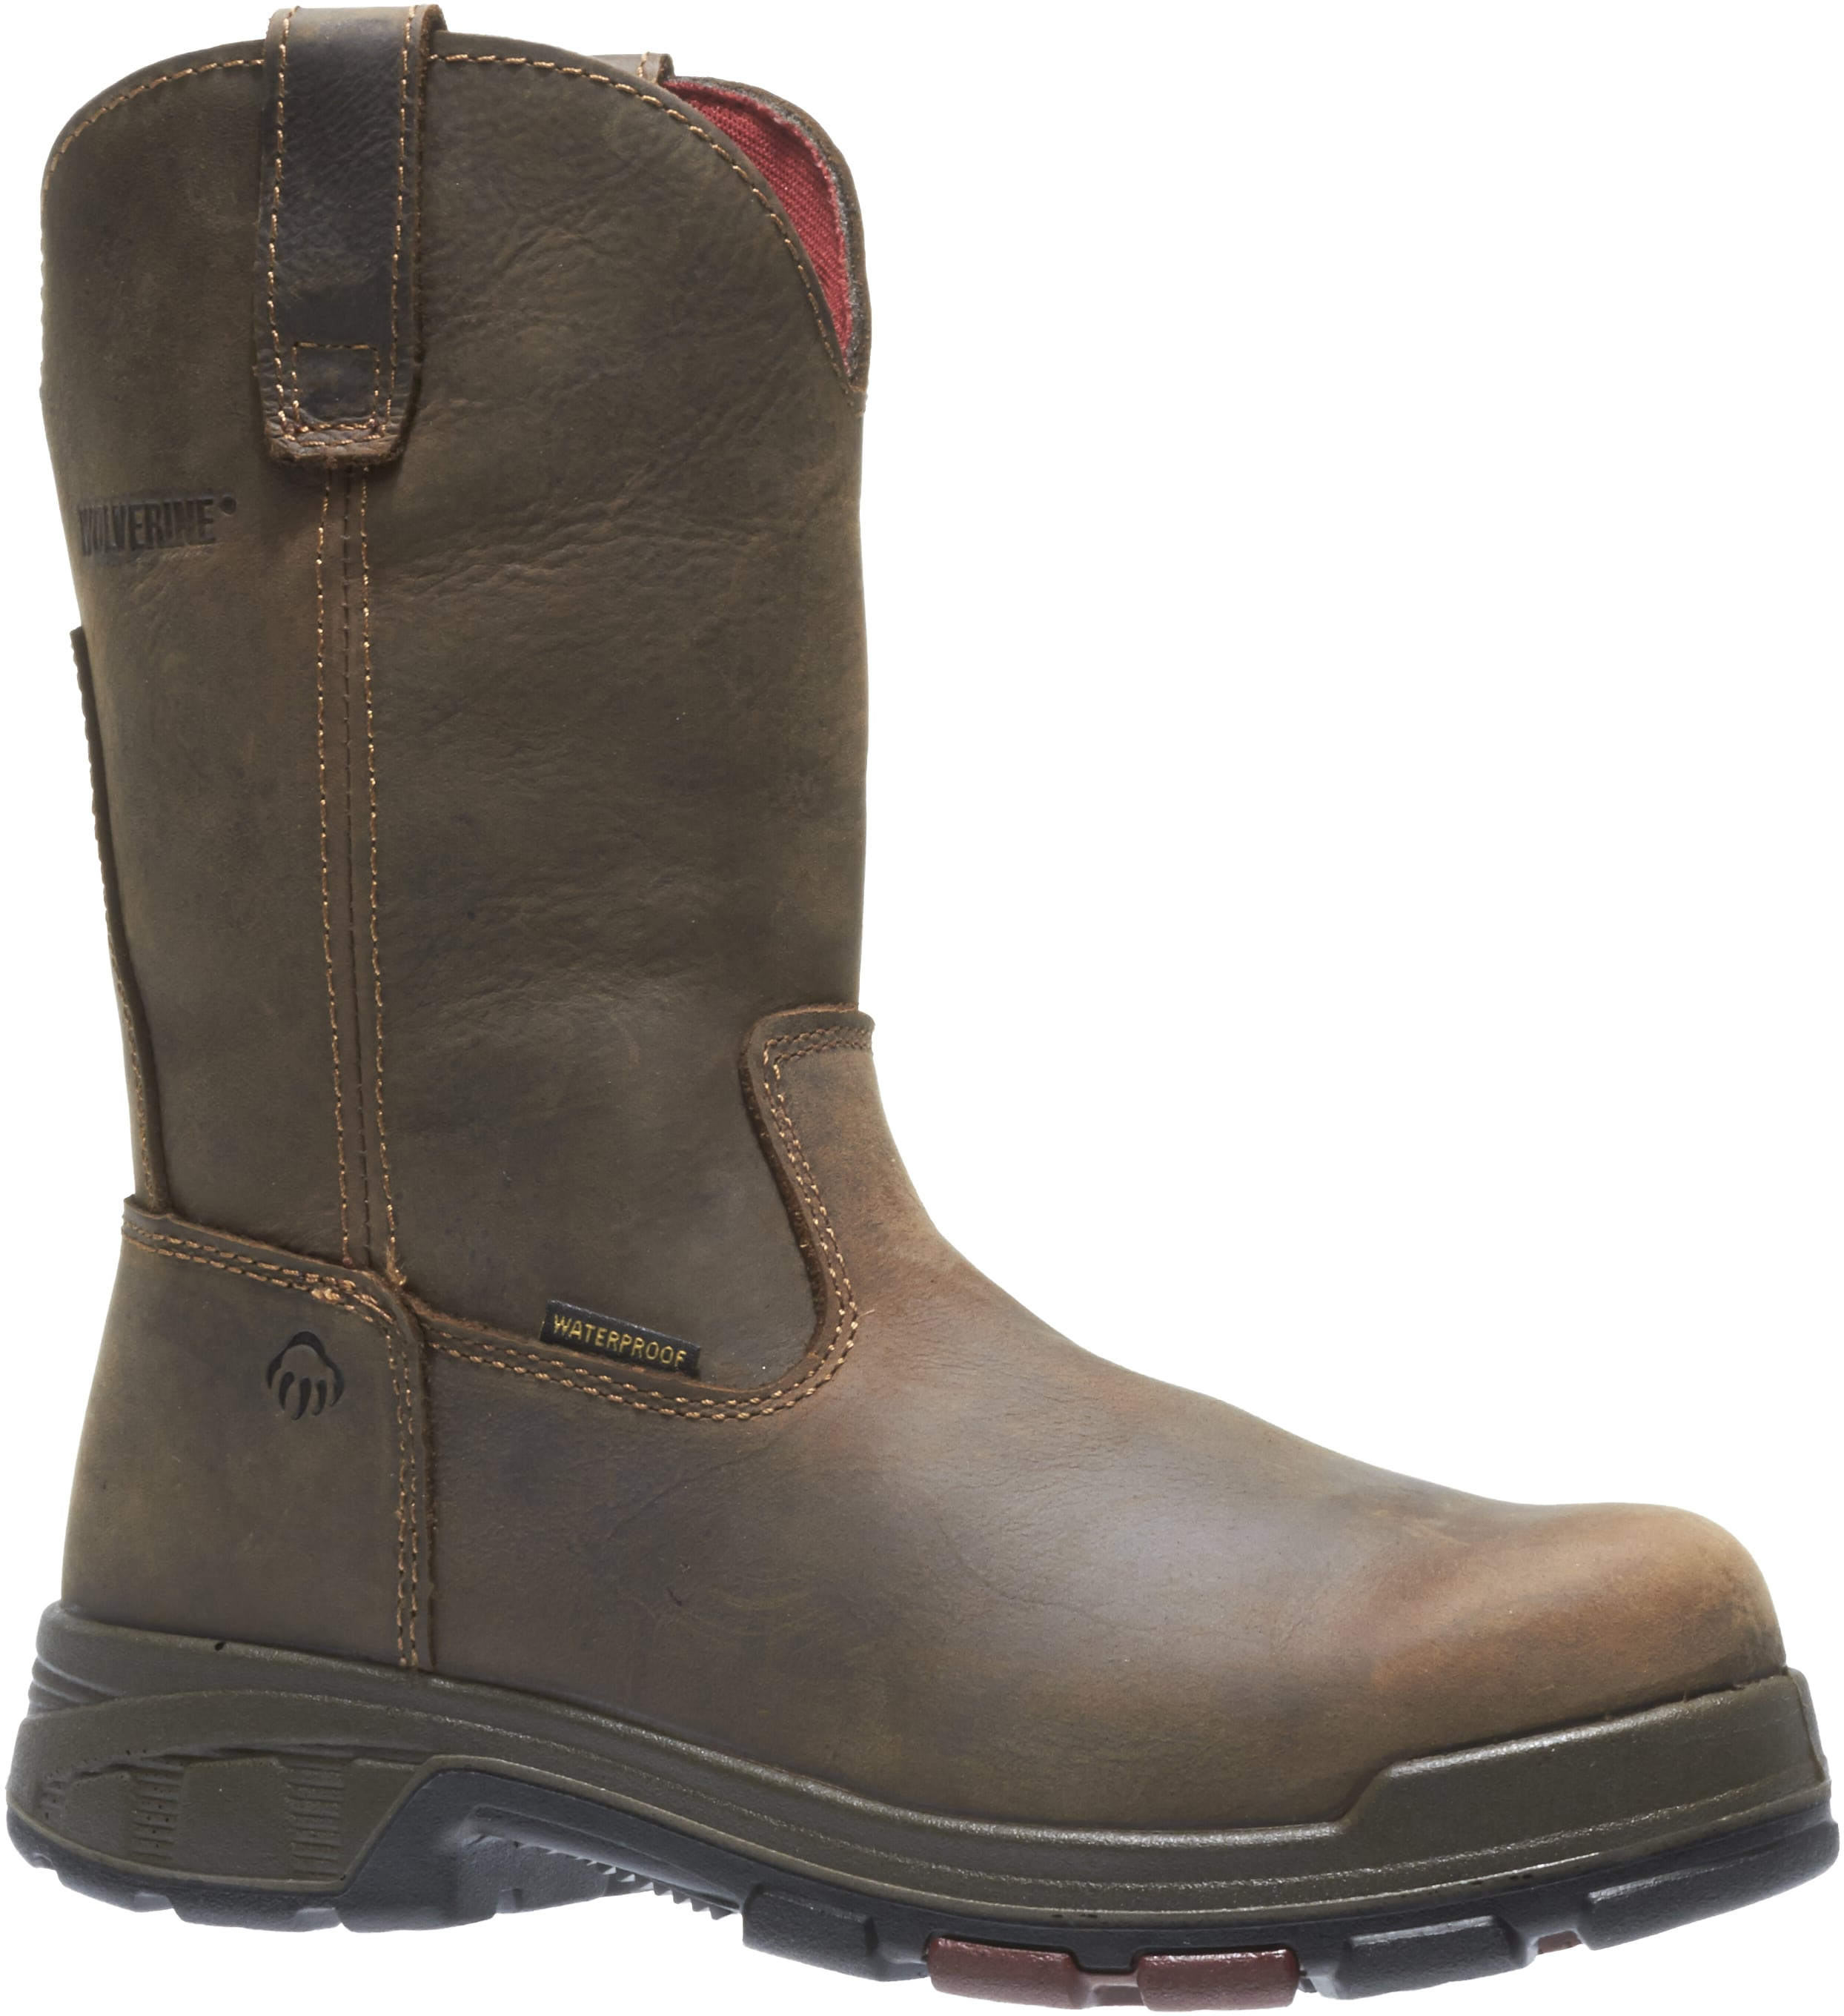 91ec04a54ee Wolverine Composite Toe Cabor Waterproof Wellington